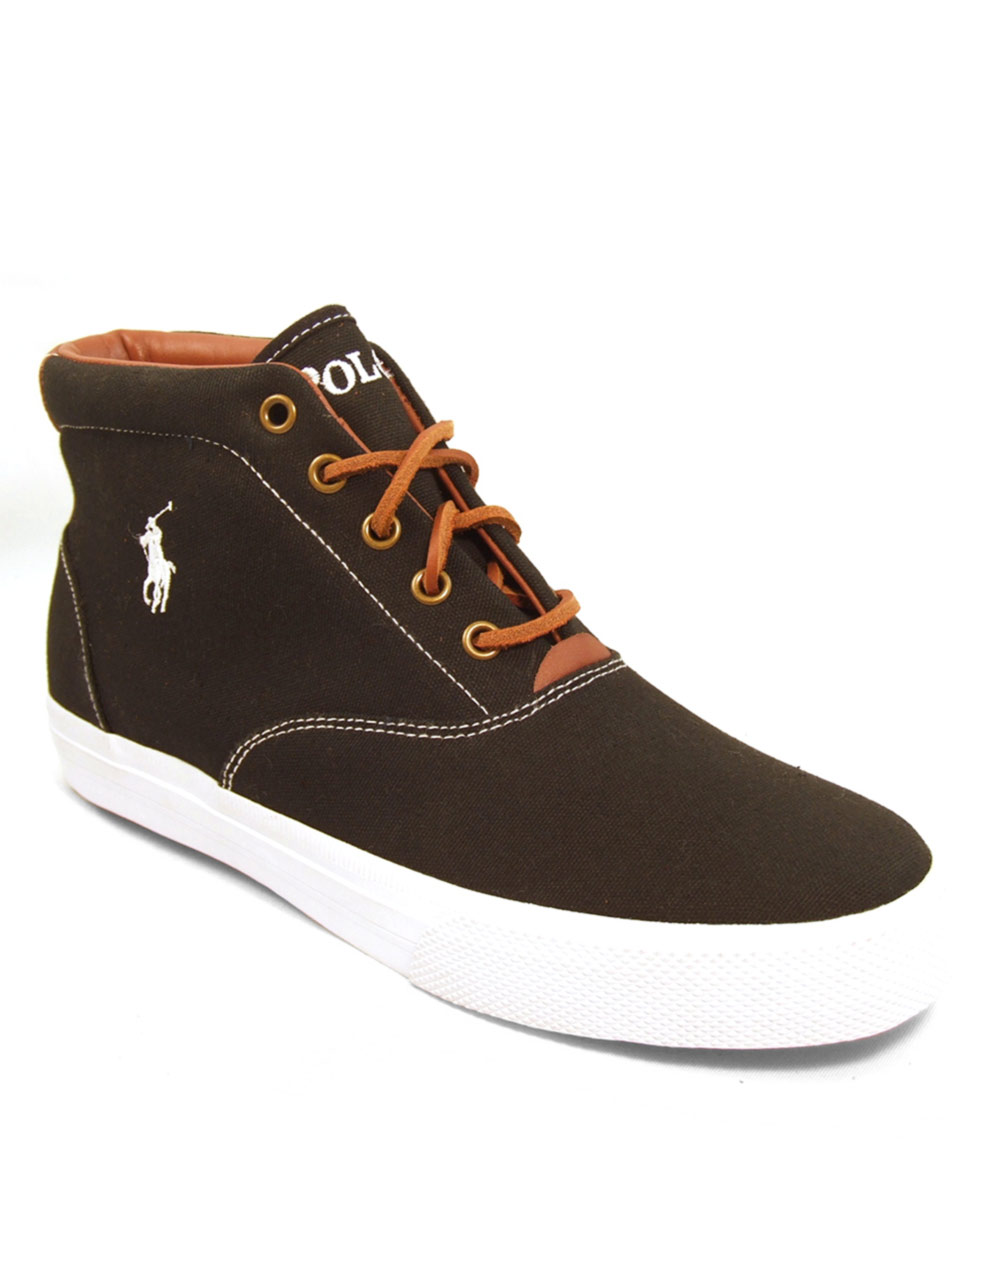 Polo High Top Leather Shoes